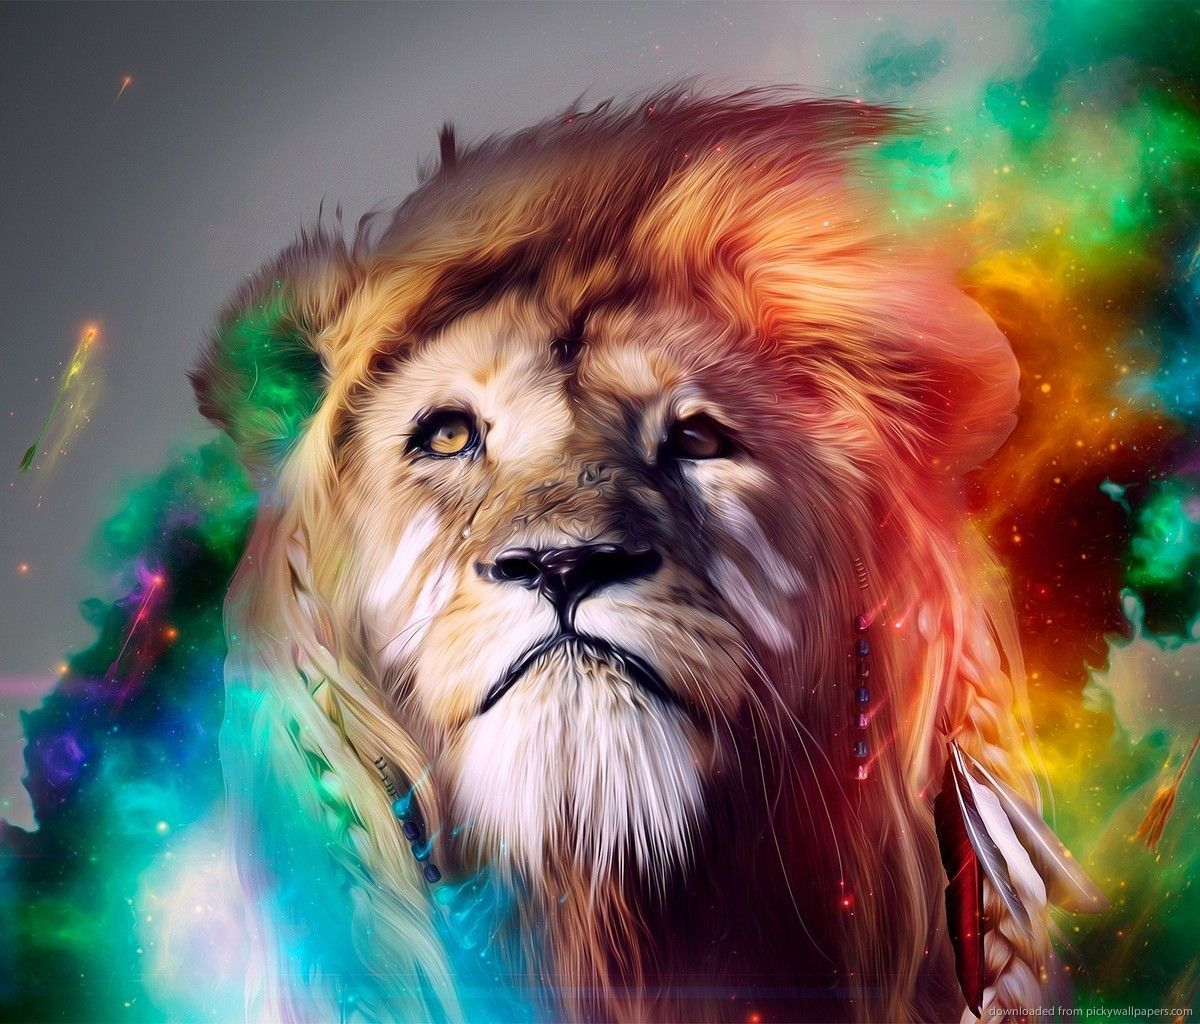 1200x1024 Download Colorful Lion Art Wallpaper For Samsung Galaxy Tab